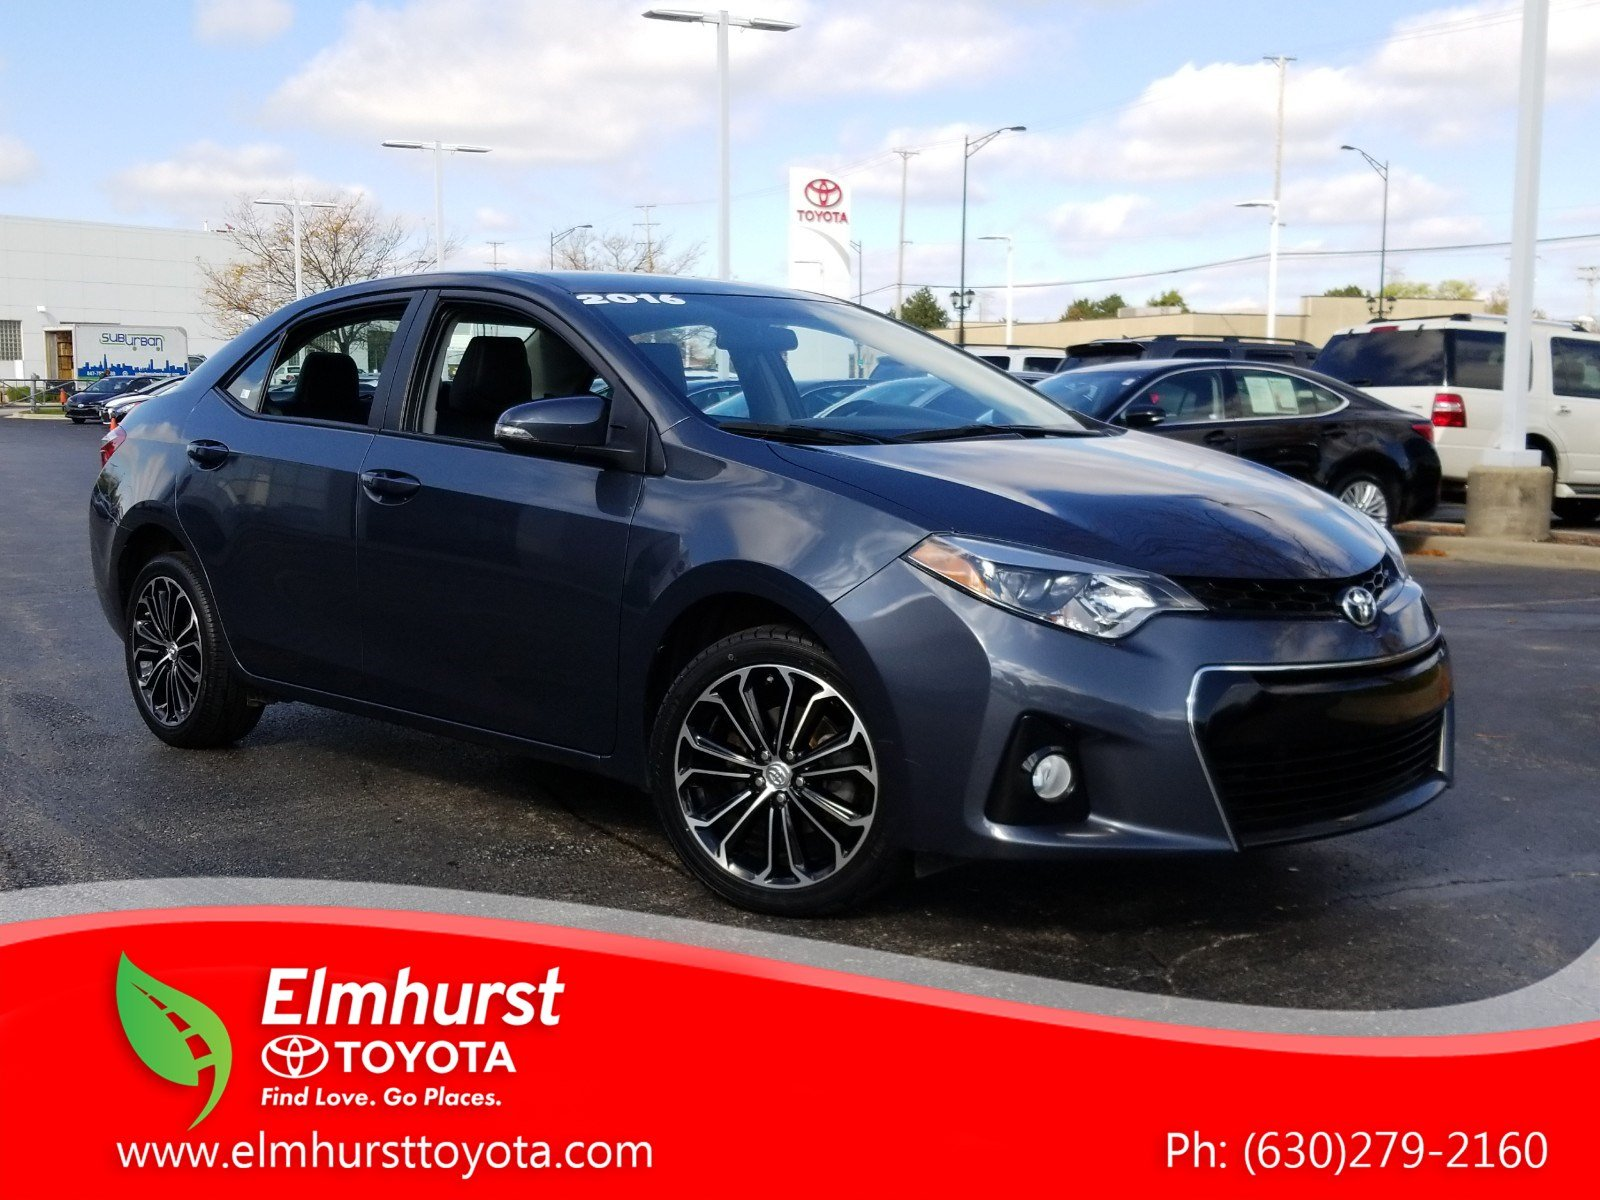 Pre Owned 2016 Toyota Corolla S Plus 4D Sedan in Elmhurst 8831P